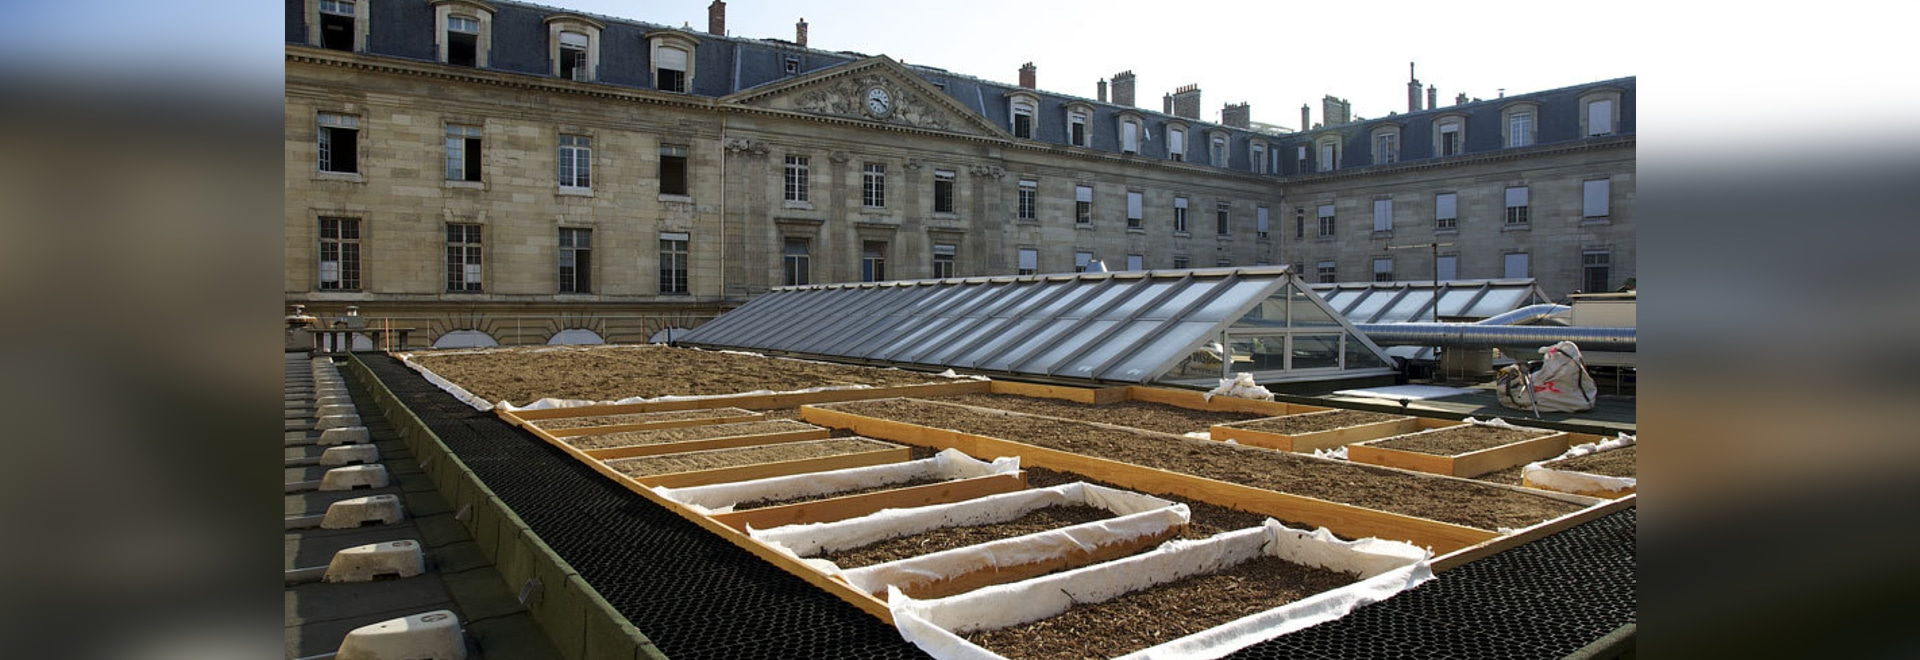 Roof garden on a building of Paris City Hall